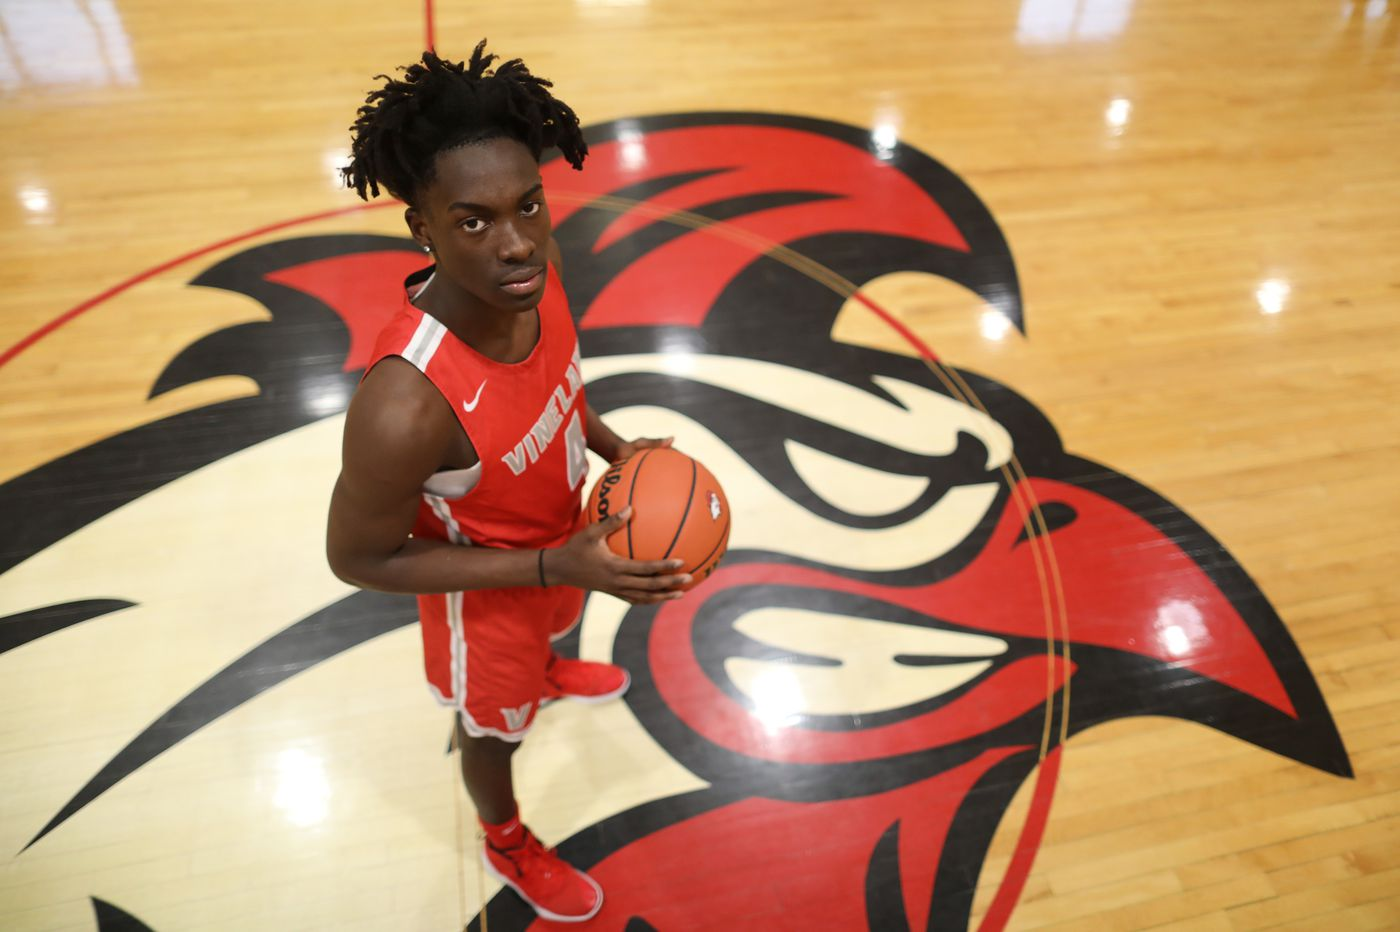 Vineland's D.J. Campbell: A basketball standout whose motor never stops